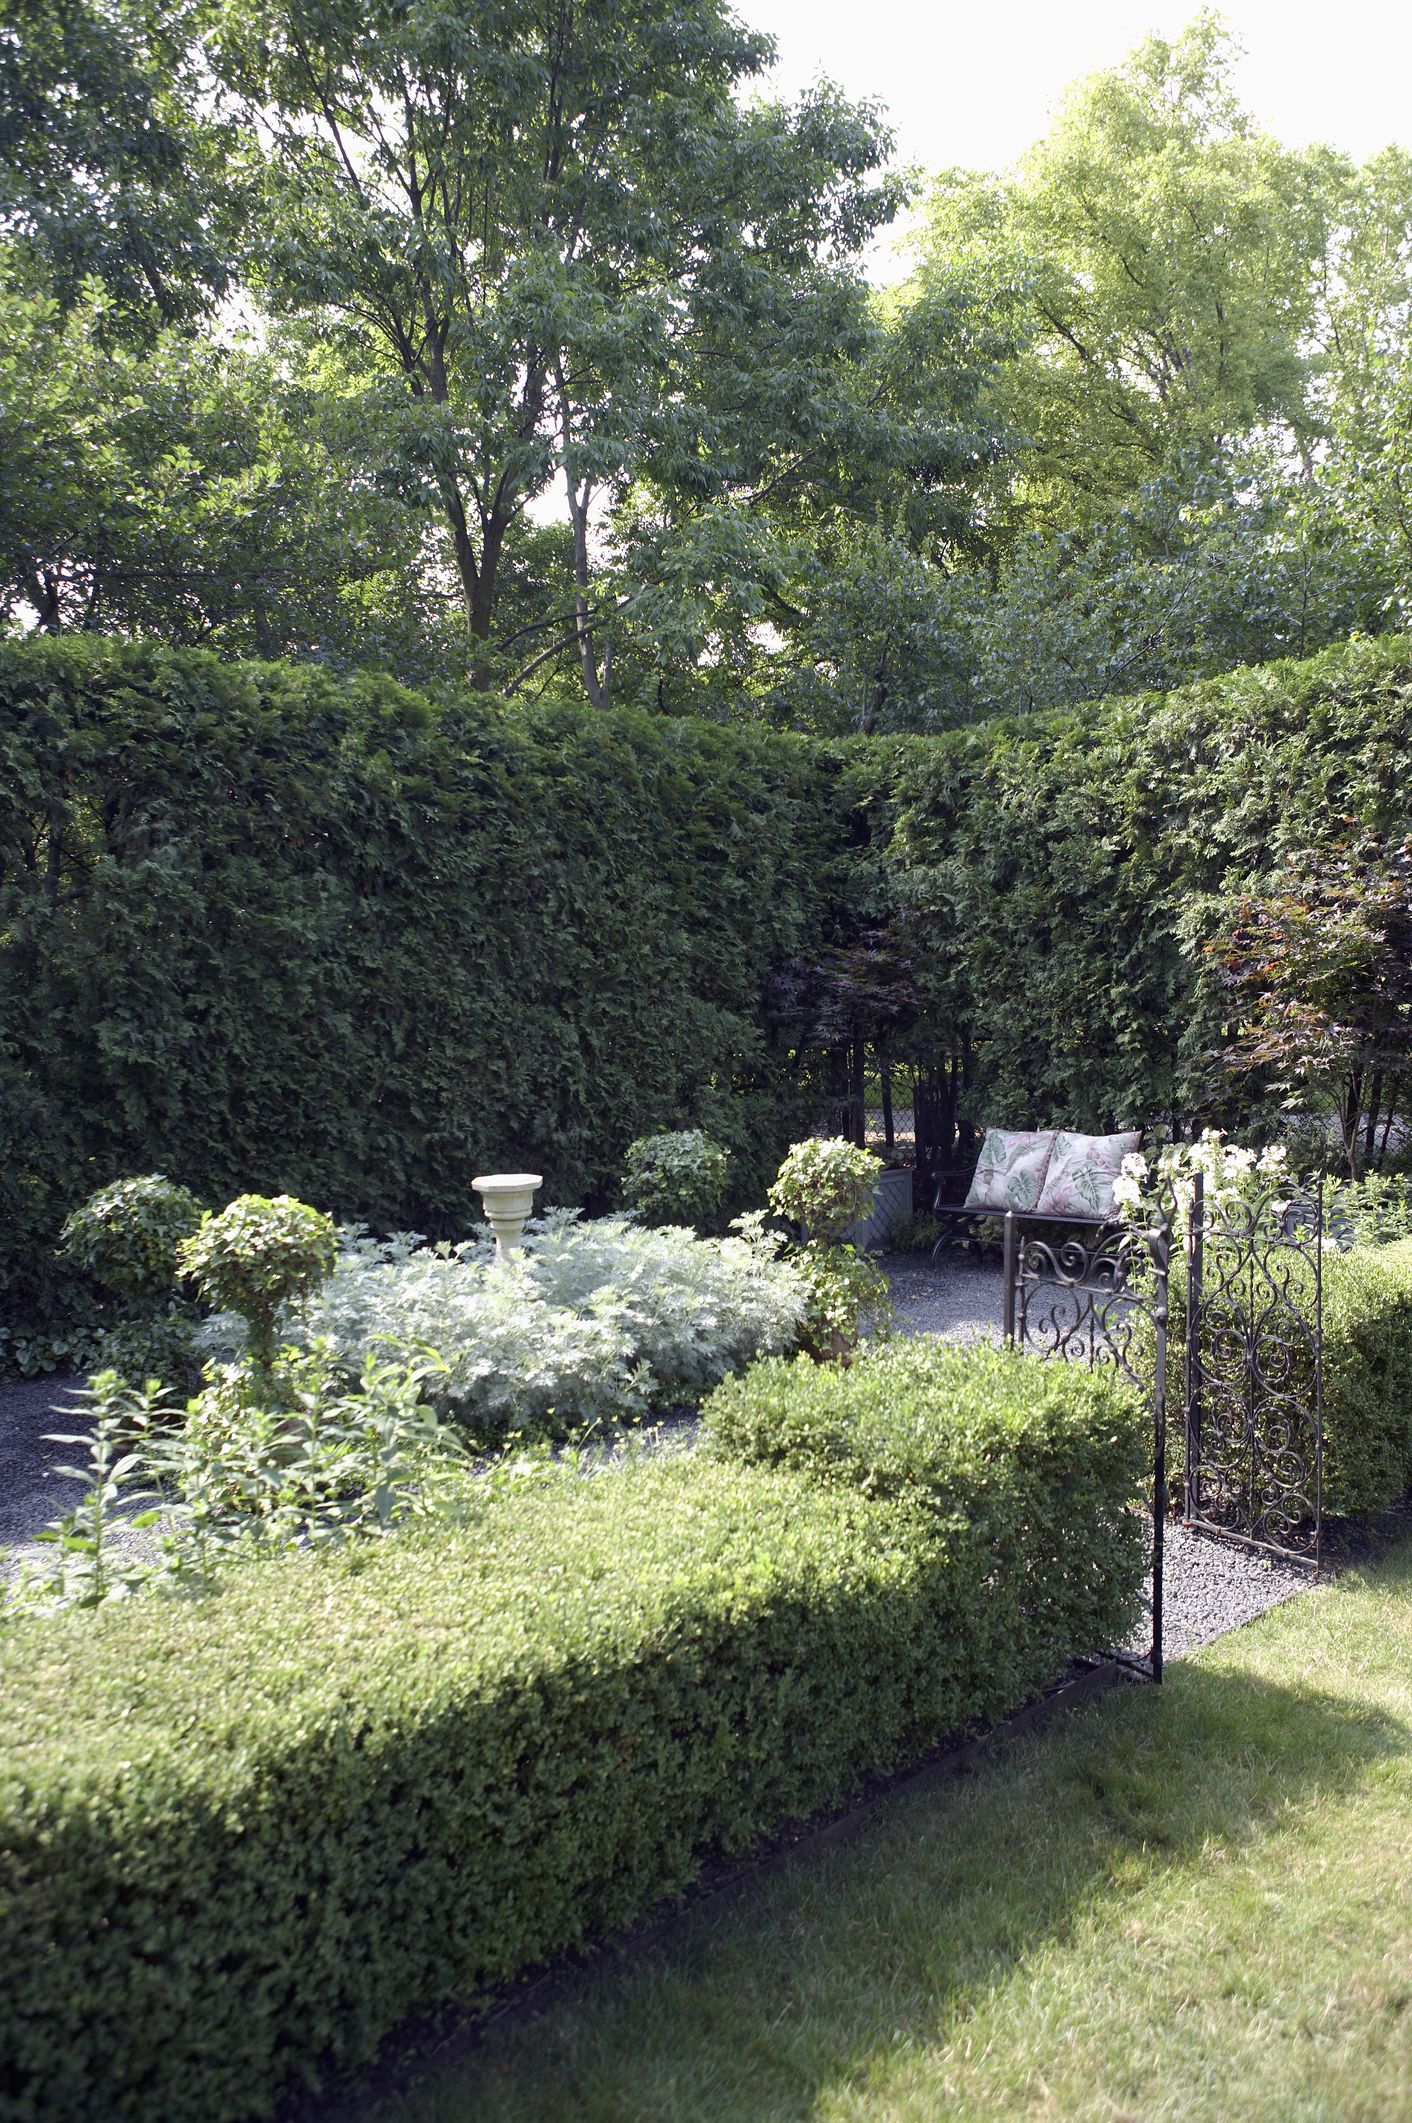 Arborvitae growth rate and drought tolerance